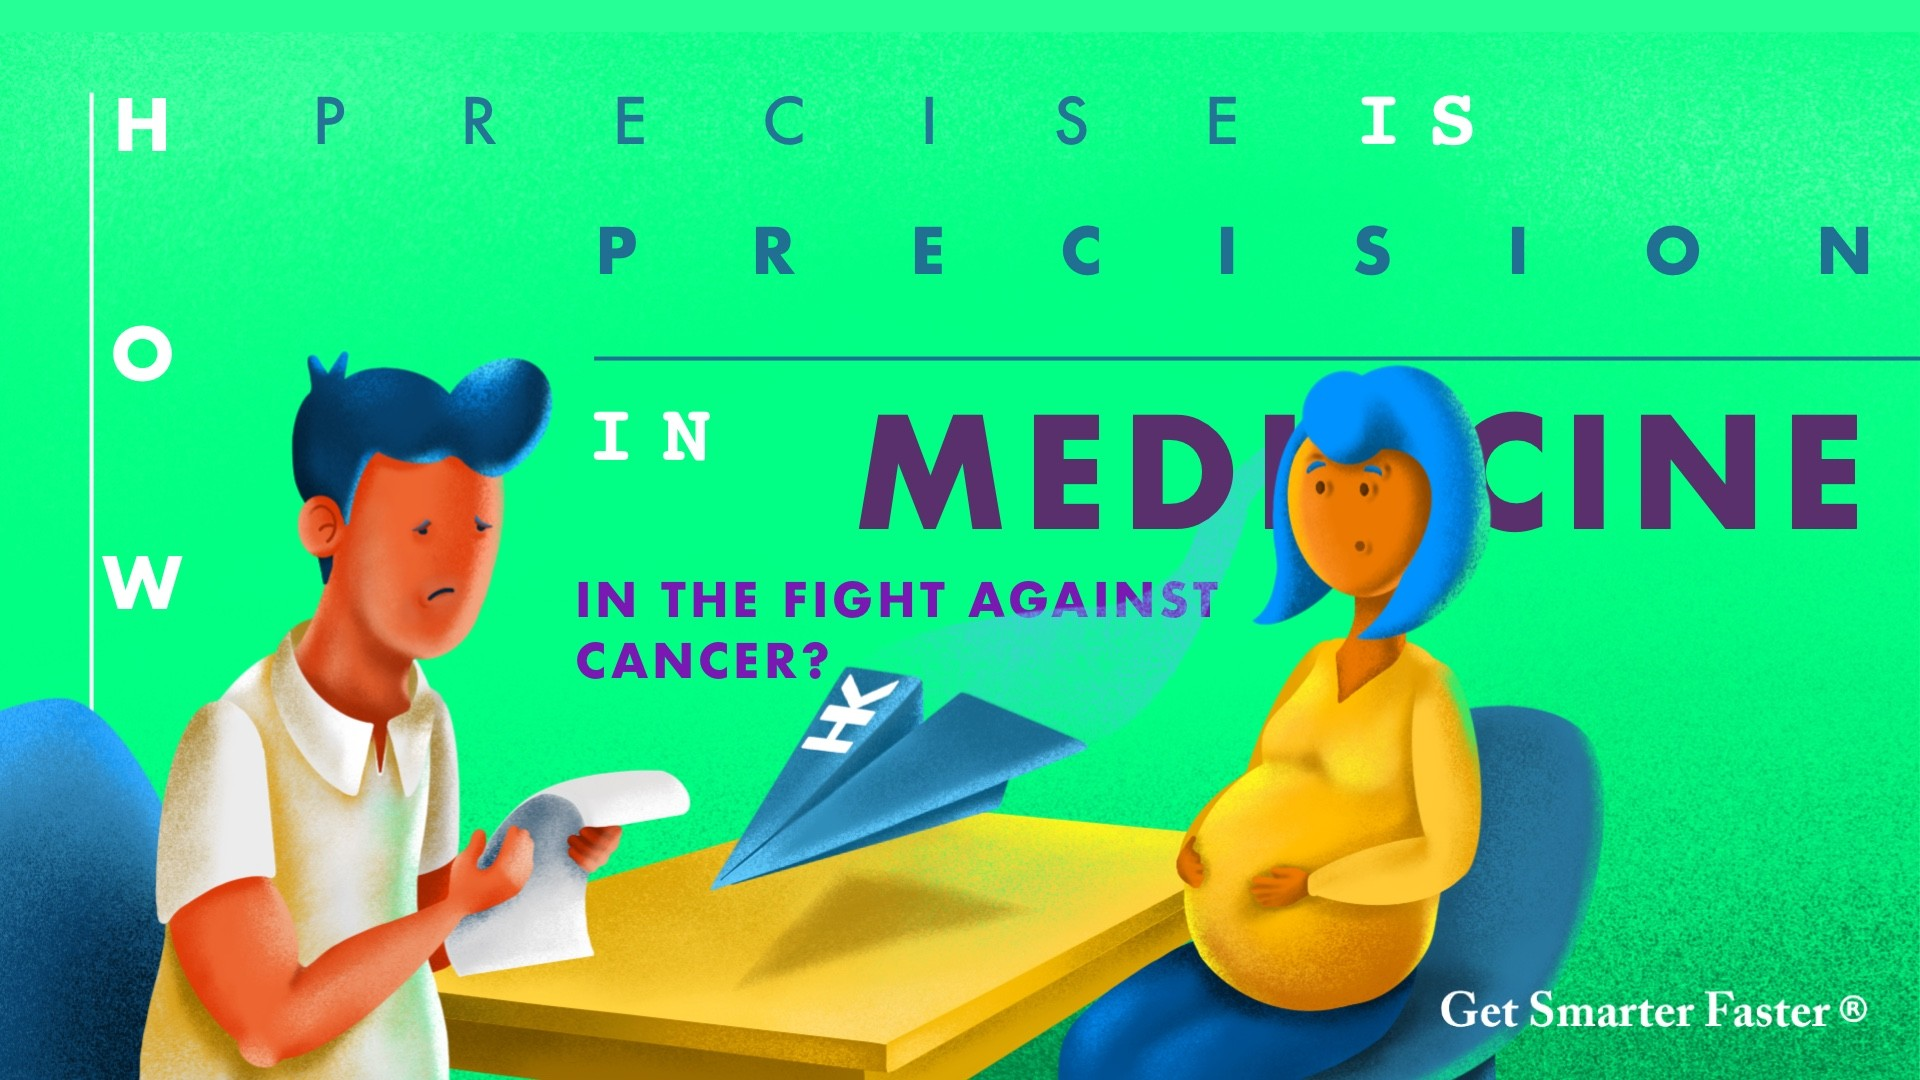 How Precise Is Precision Medicine In The Fight Against Cancer?